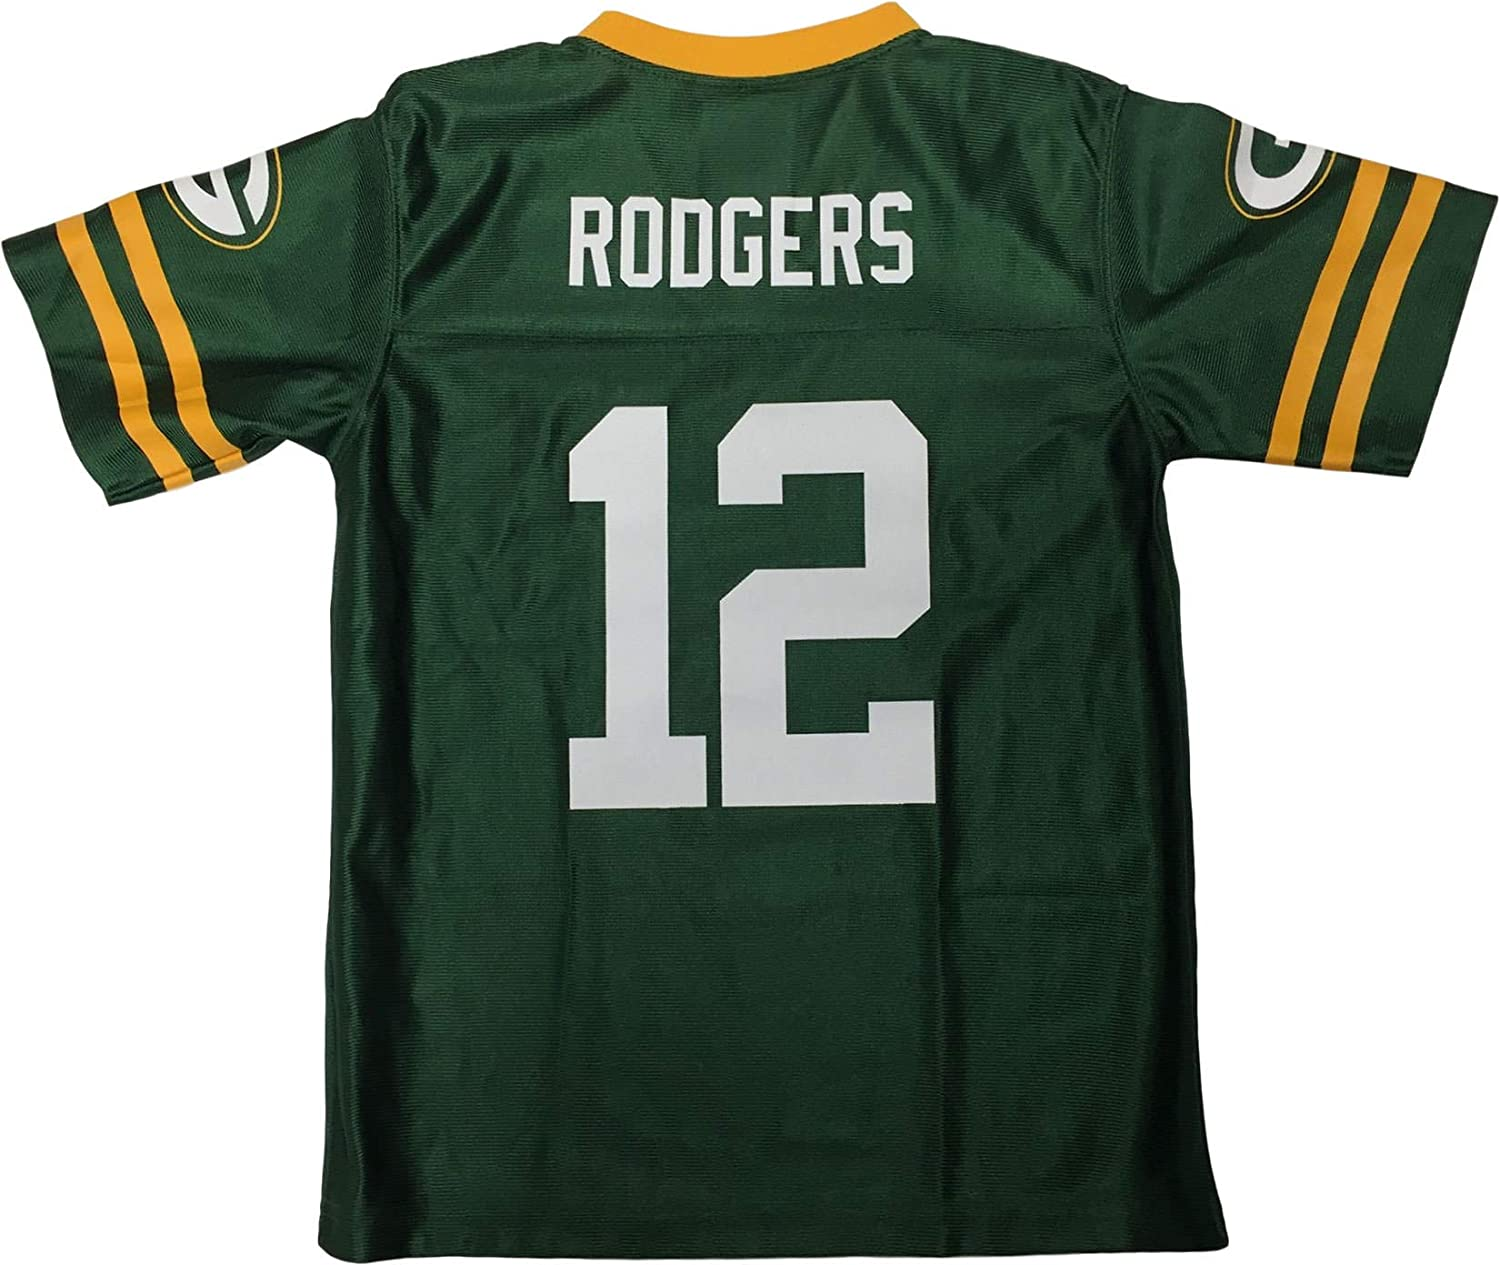 Outerstuff Green Bay Packers Boy's Youth Aaron Rodgers #12 Football Jersey